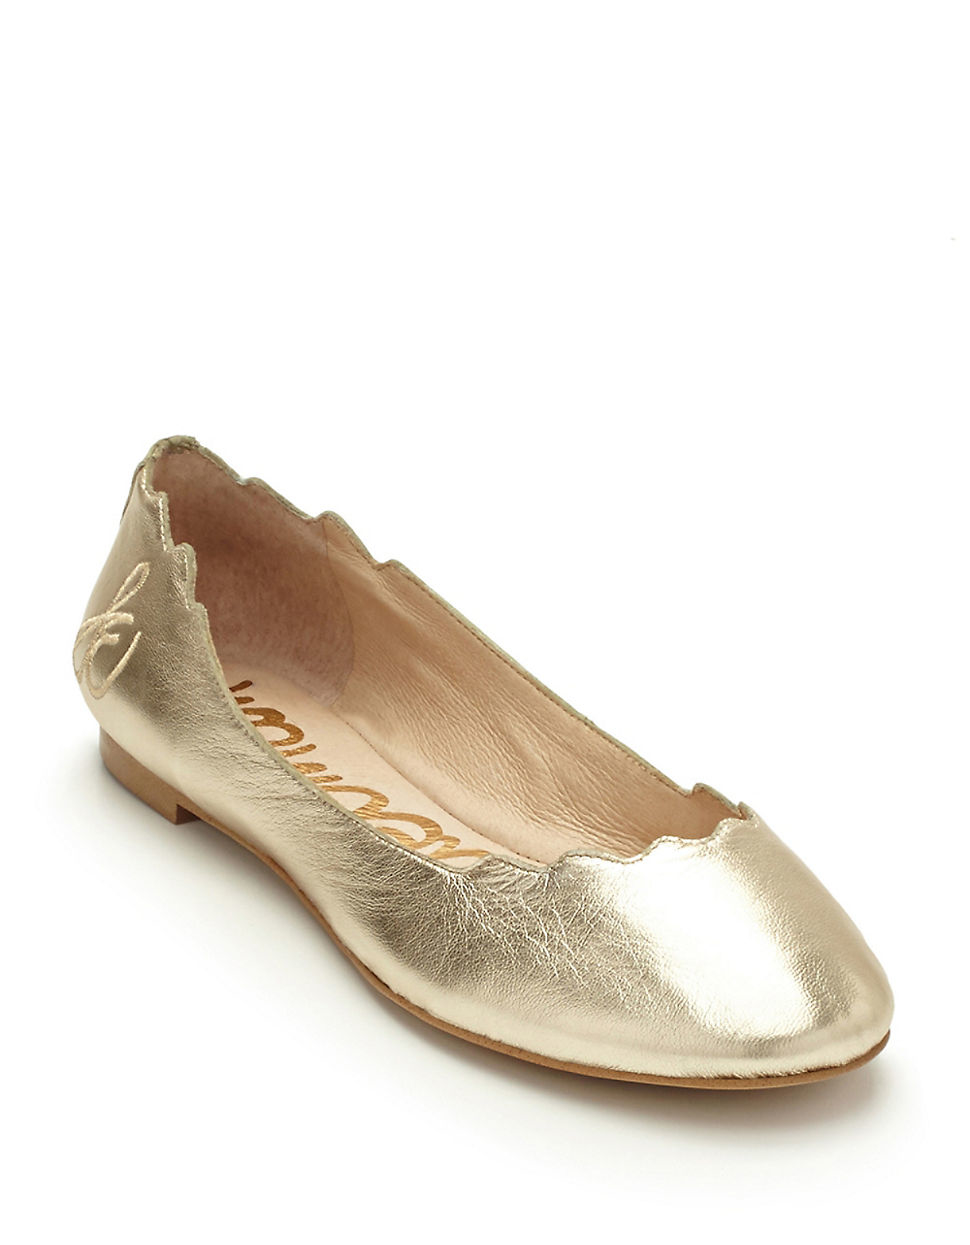 4f29d67bd65957 Lyst - Sam Edelman Augusta Leather Flats in Metallic